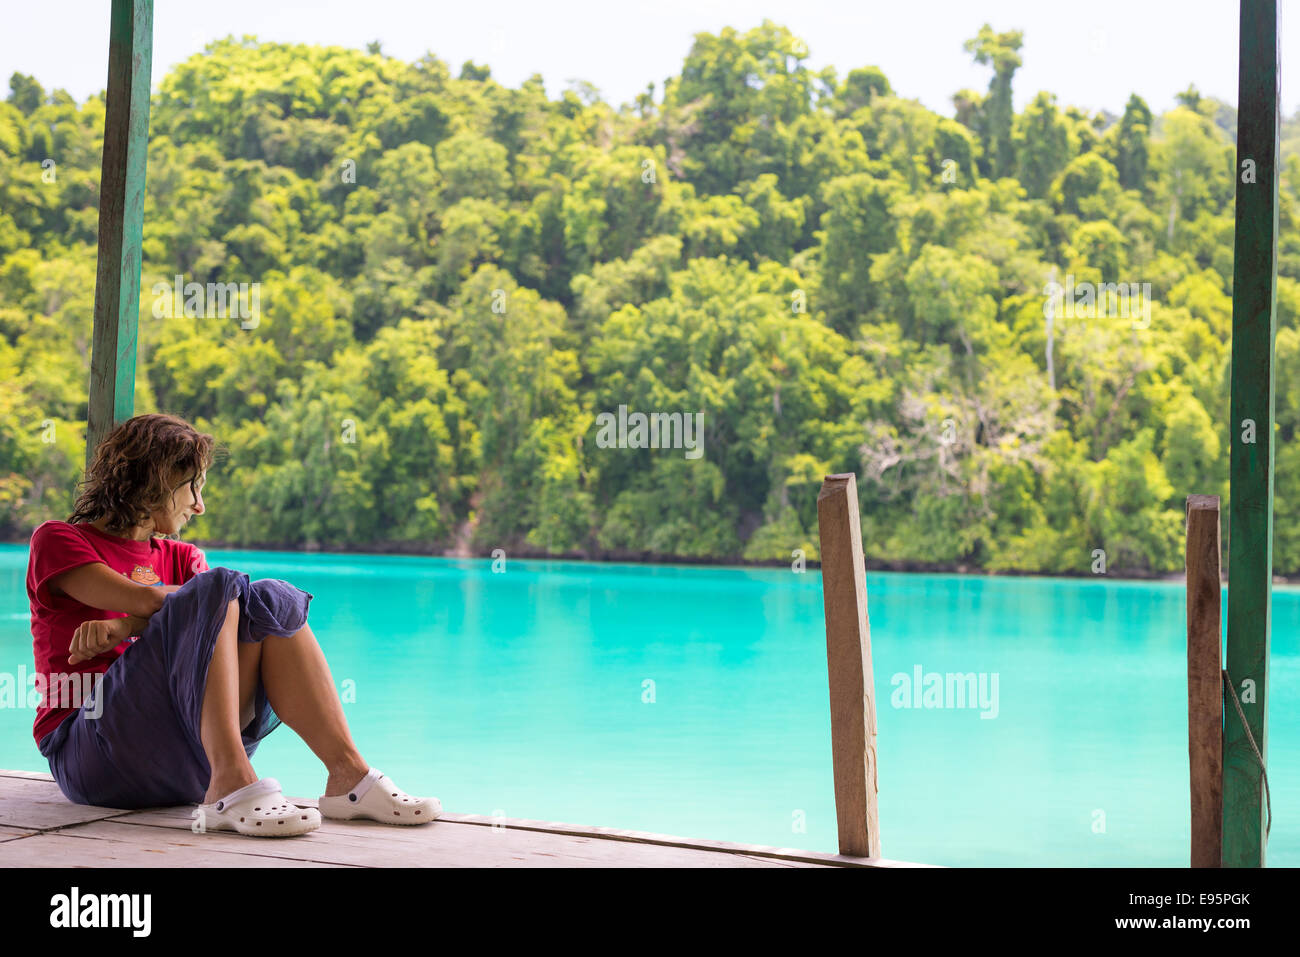 Tourist watching the stunning colors of the remote Togean Islands (or Togian Islands), Central Sulawesi, Indonesia. - Stock Image